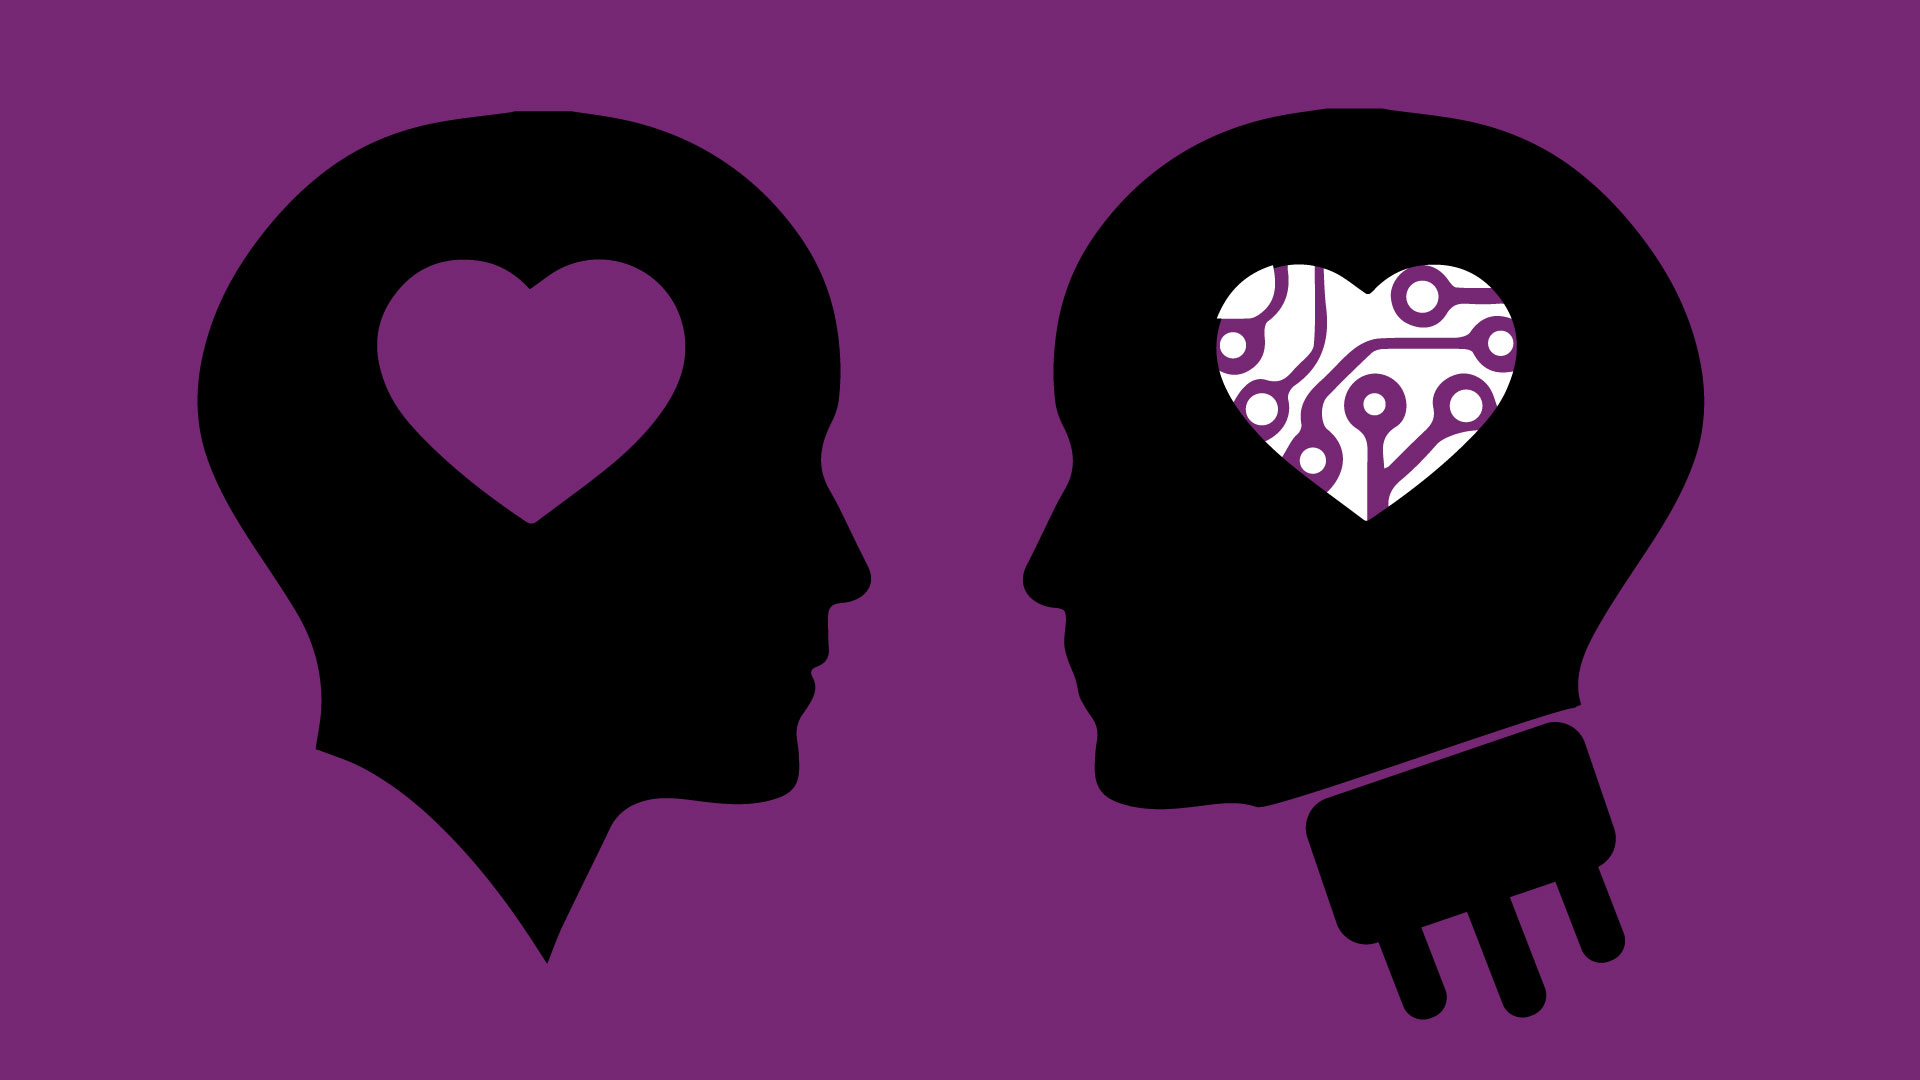 Illustration of two heads, one human and the other a robot or machine.